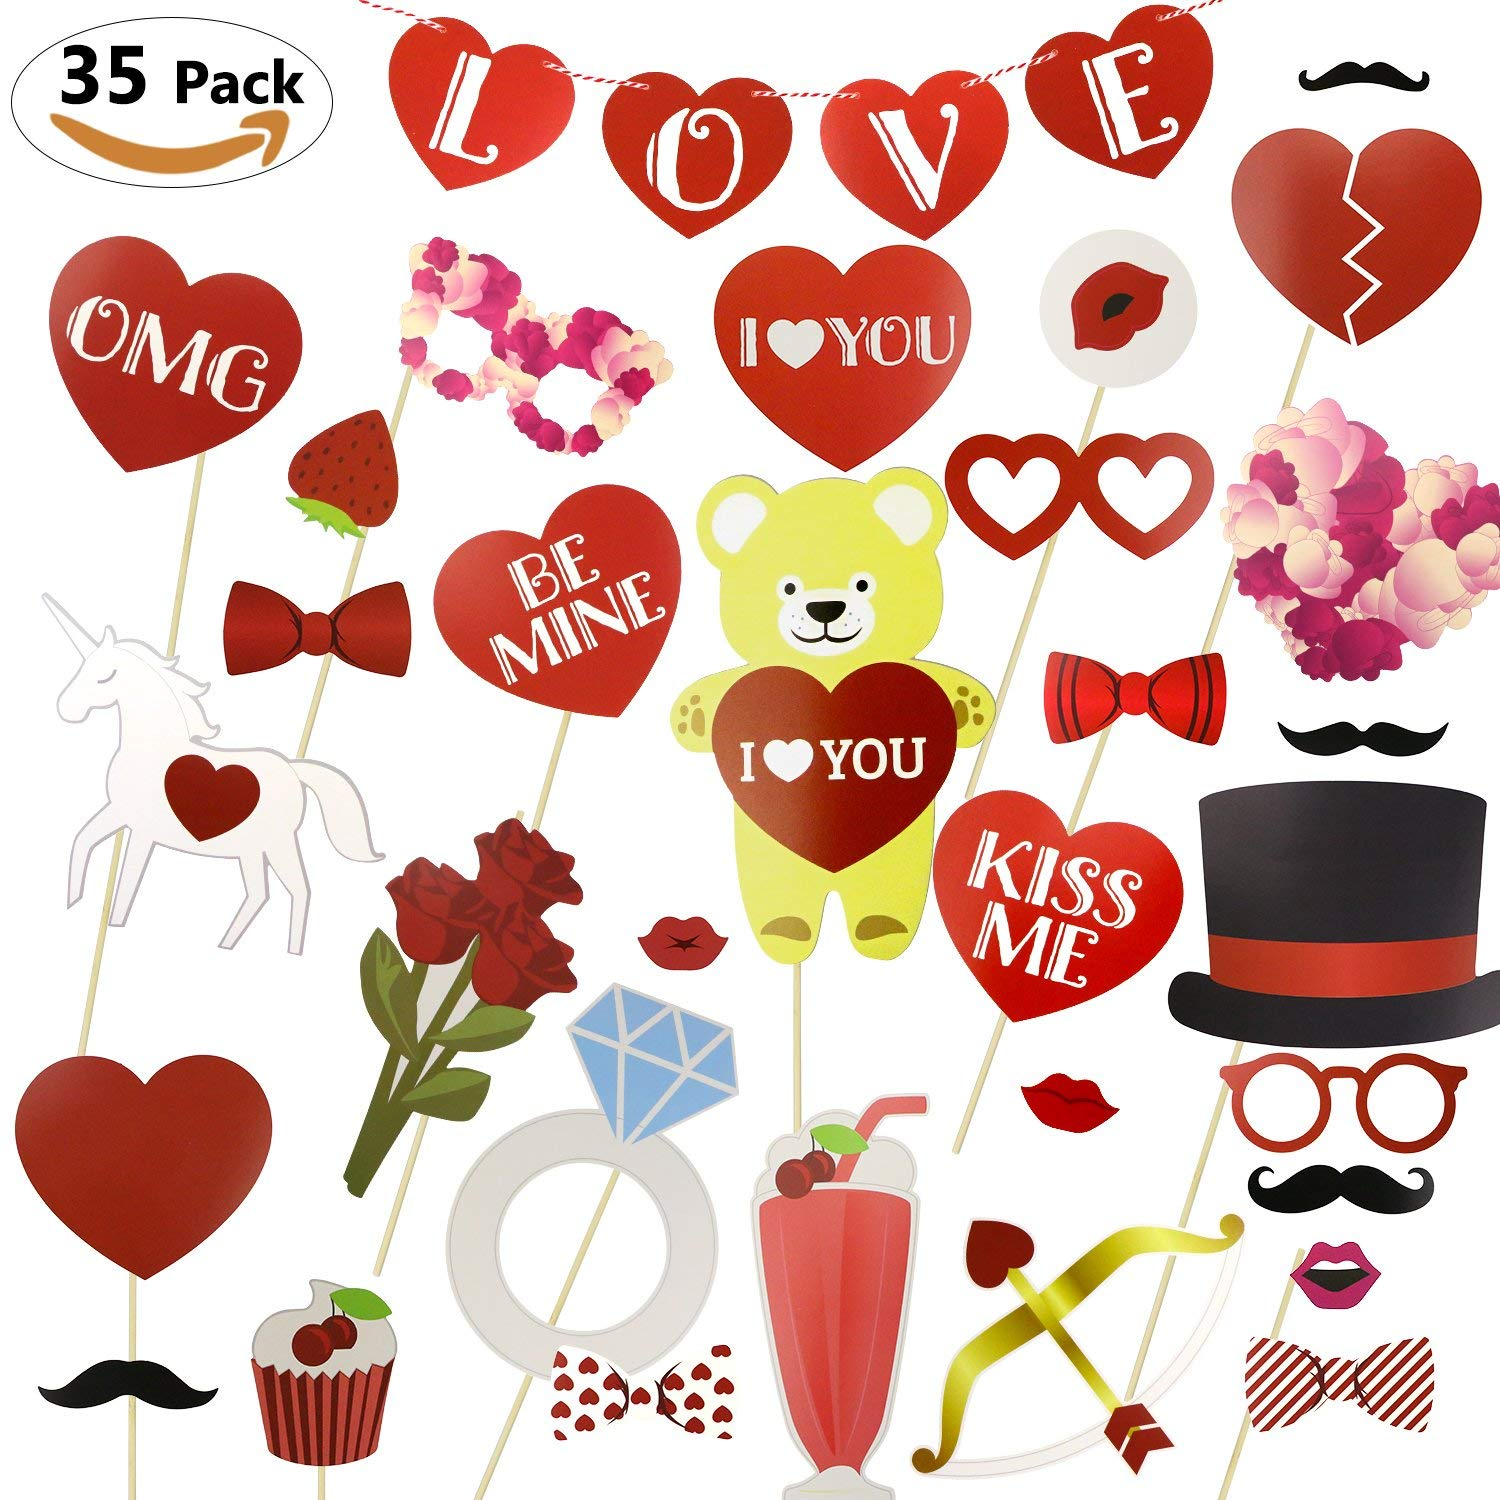 Philonext 35 Pcs Valentines Day Photo Booth Props Kit Wedding Photo BoothWedding Party Decorations Photo Booth Mustaches Lips Hearts Valentine's Day Photo Booth Props Kit Valentines day, Wedding Decor